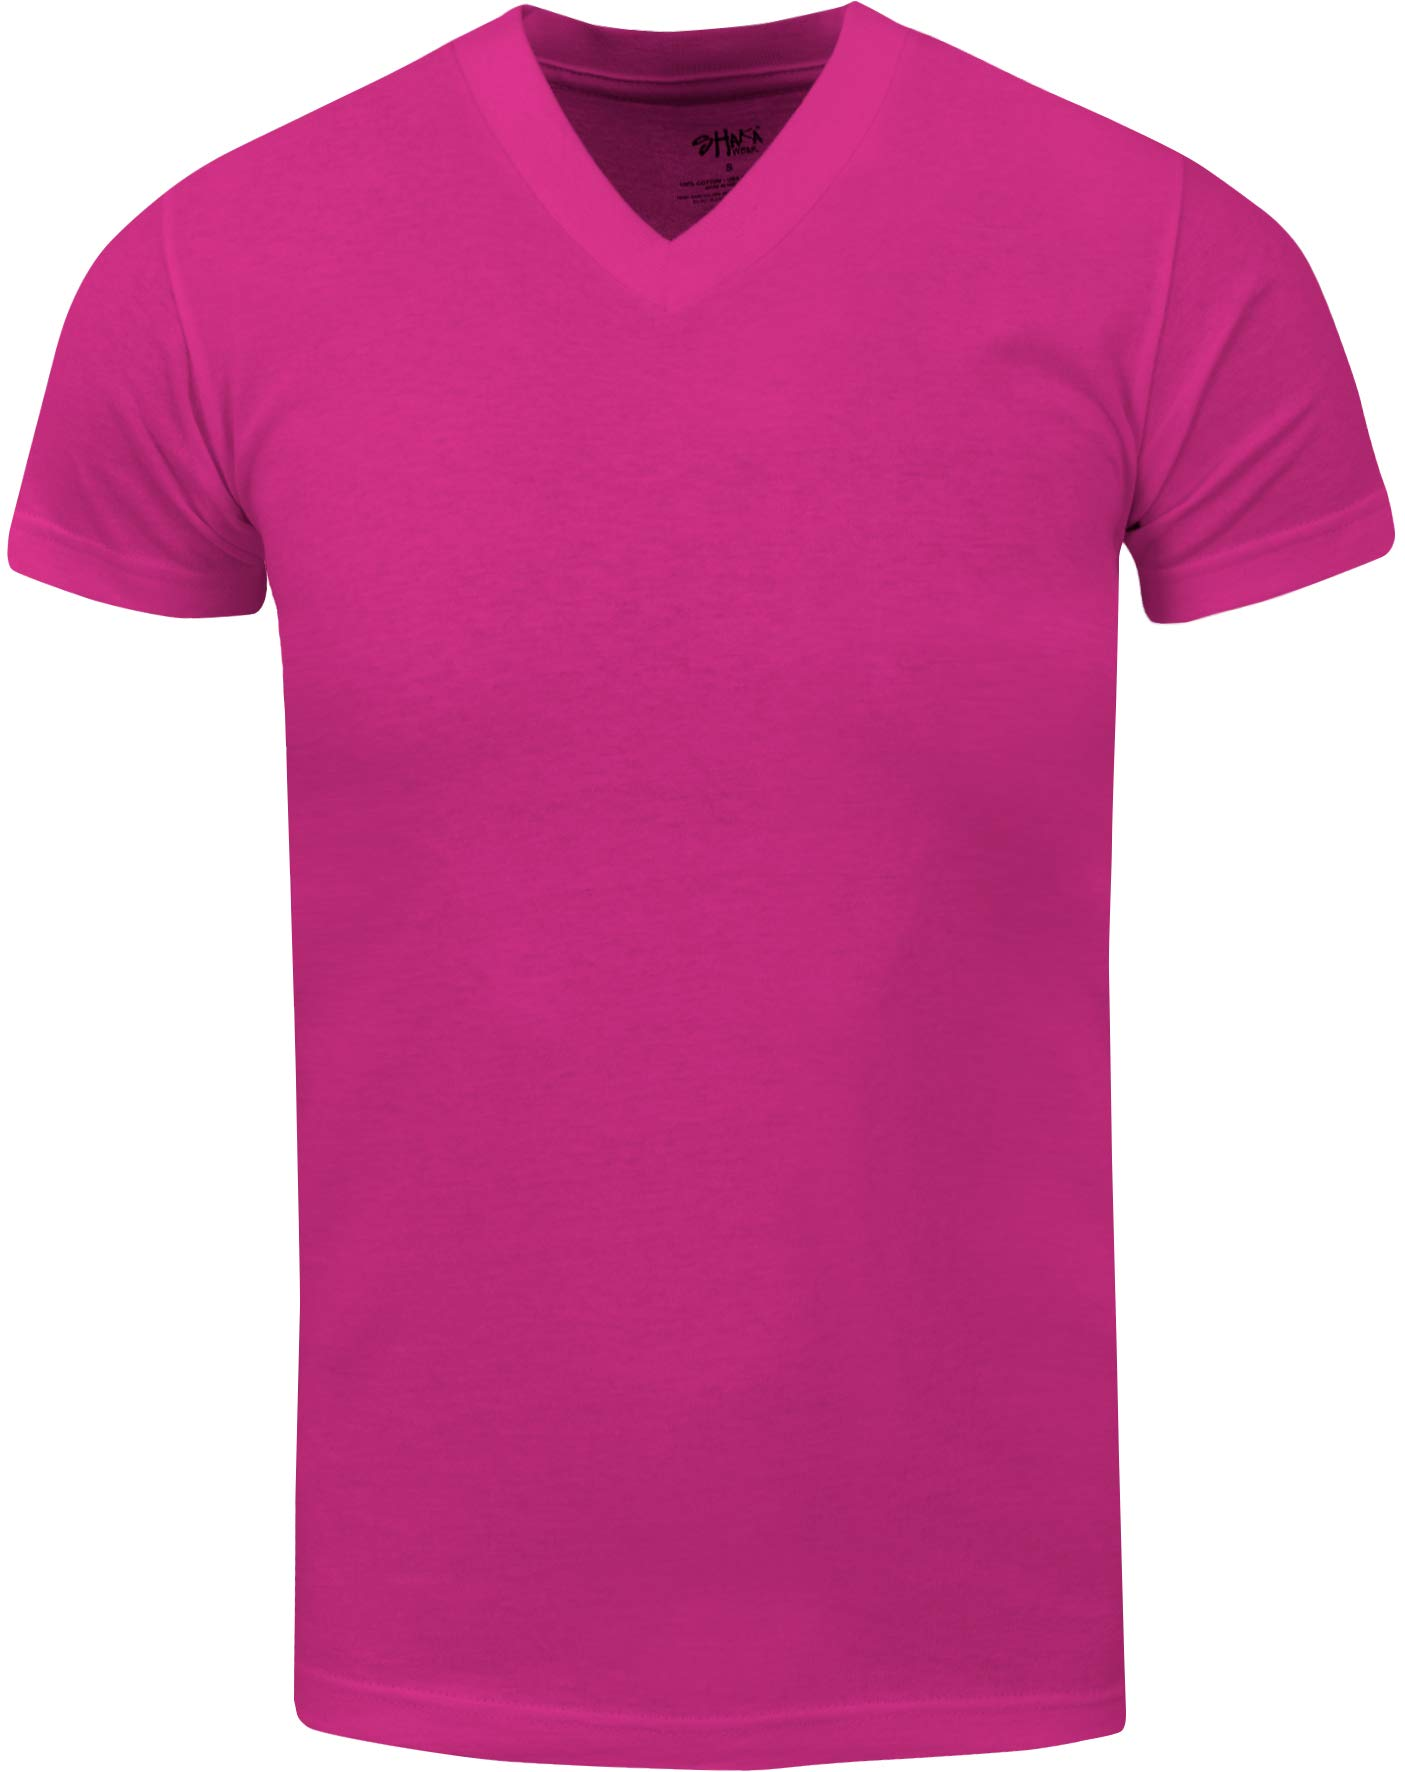 VNS24_ Active Mens Premium Cotton Heavy Weight V Neck Basic T Shirt Hot Pink by Shaka Wear (Image #1)